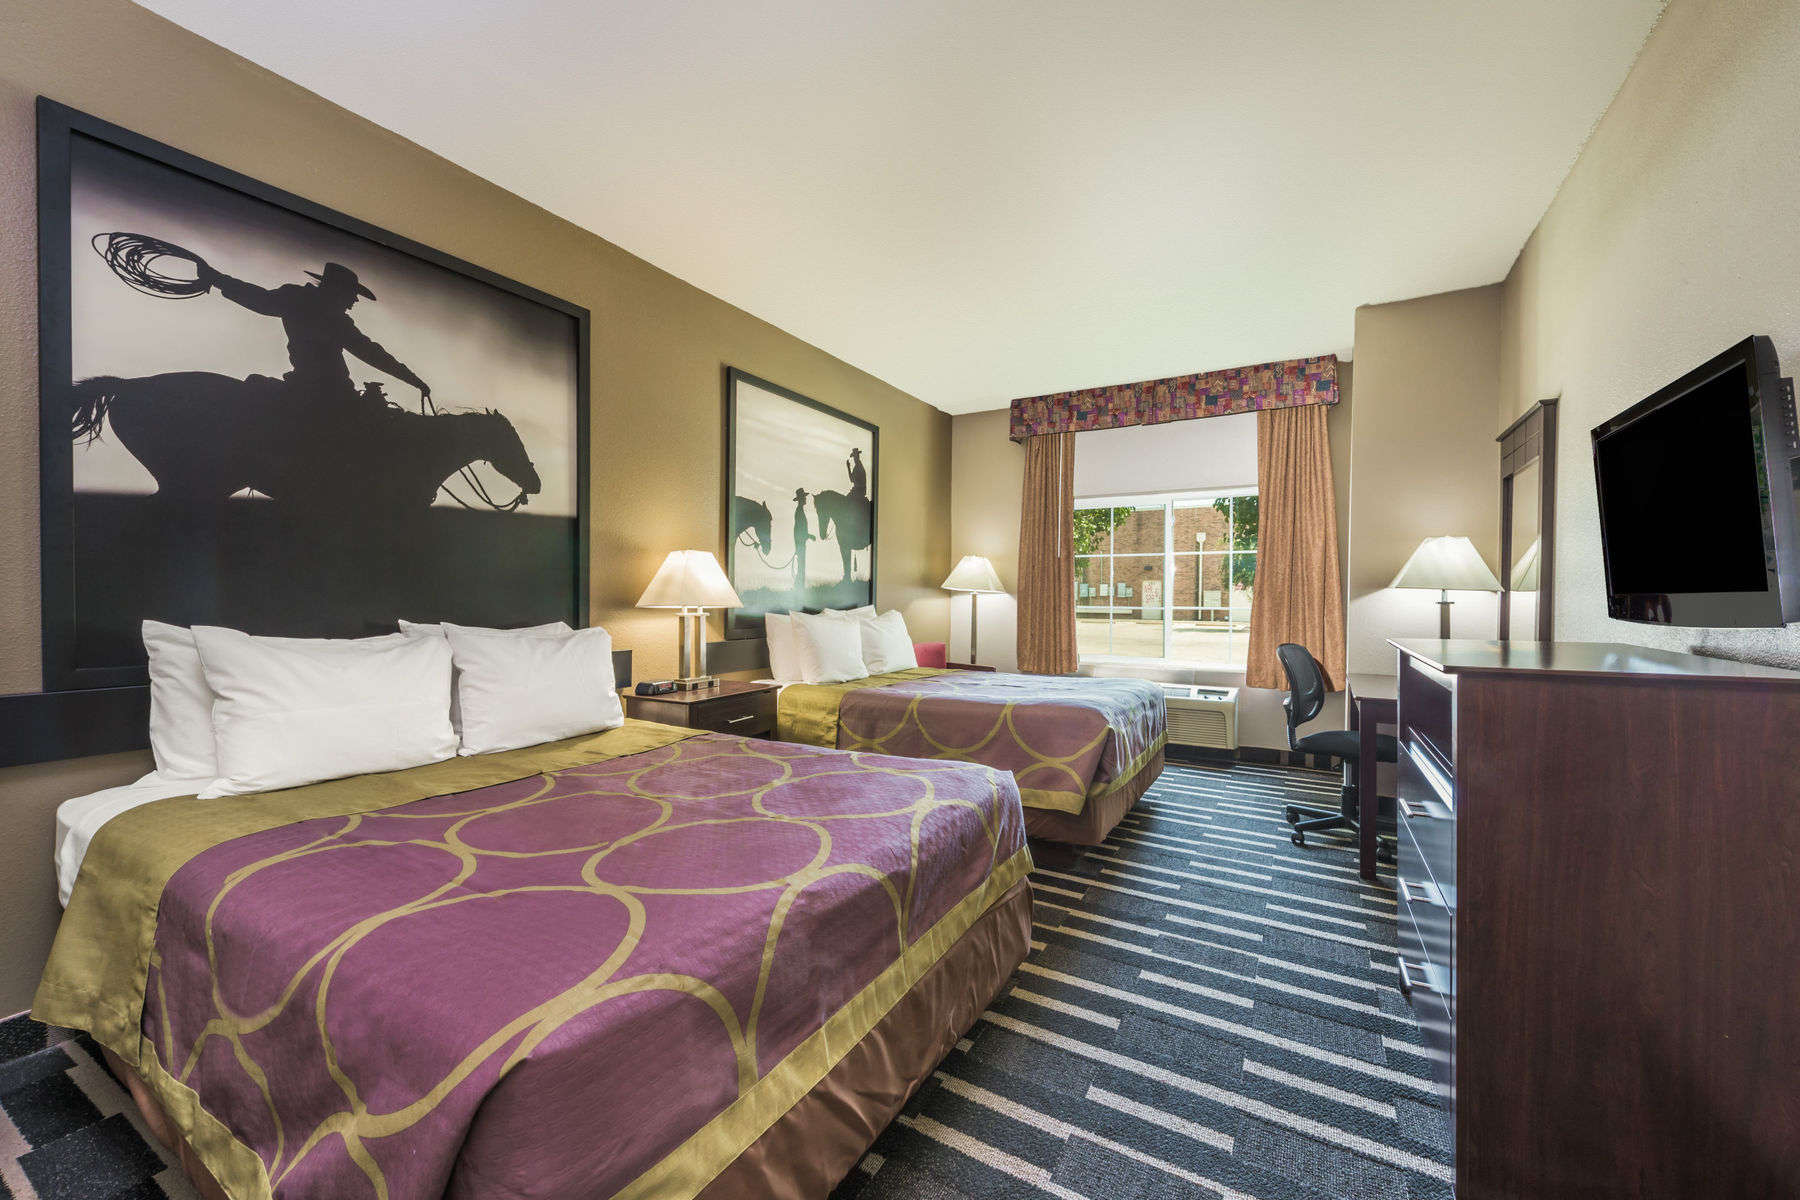 Super 8 Hotel Fort Worth Texas Hotels In Fort Worth Texas